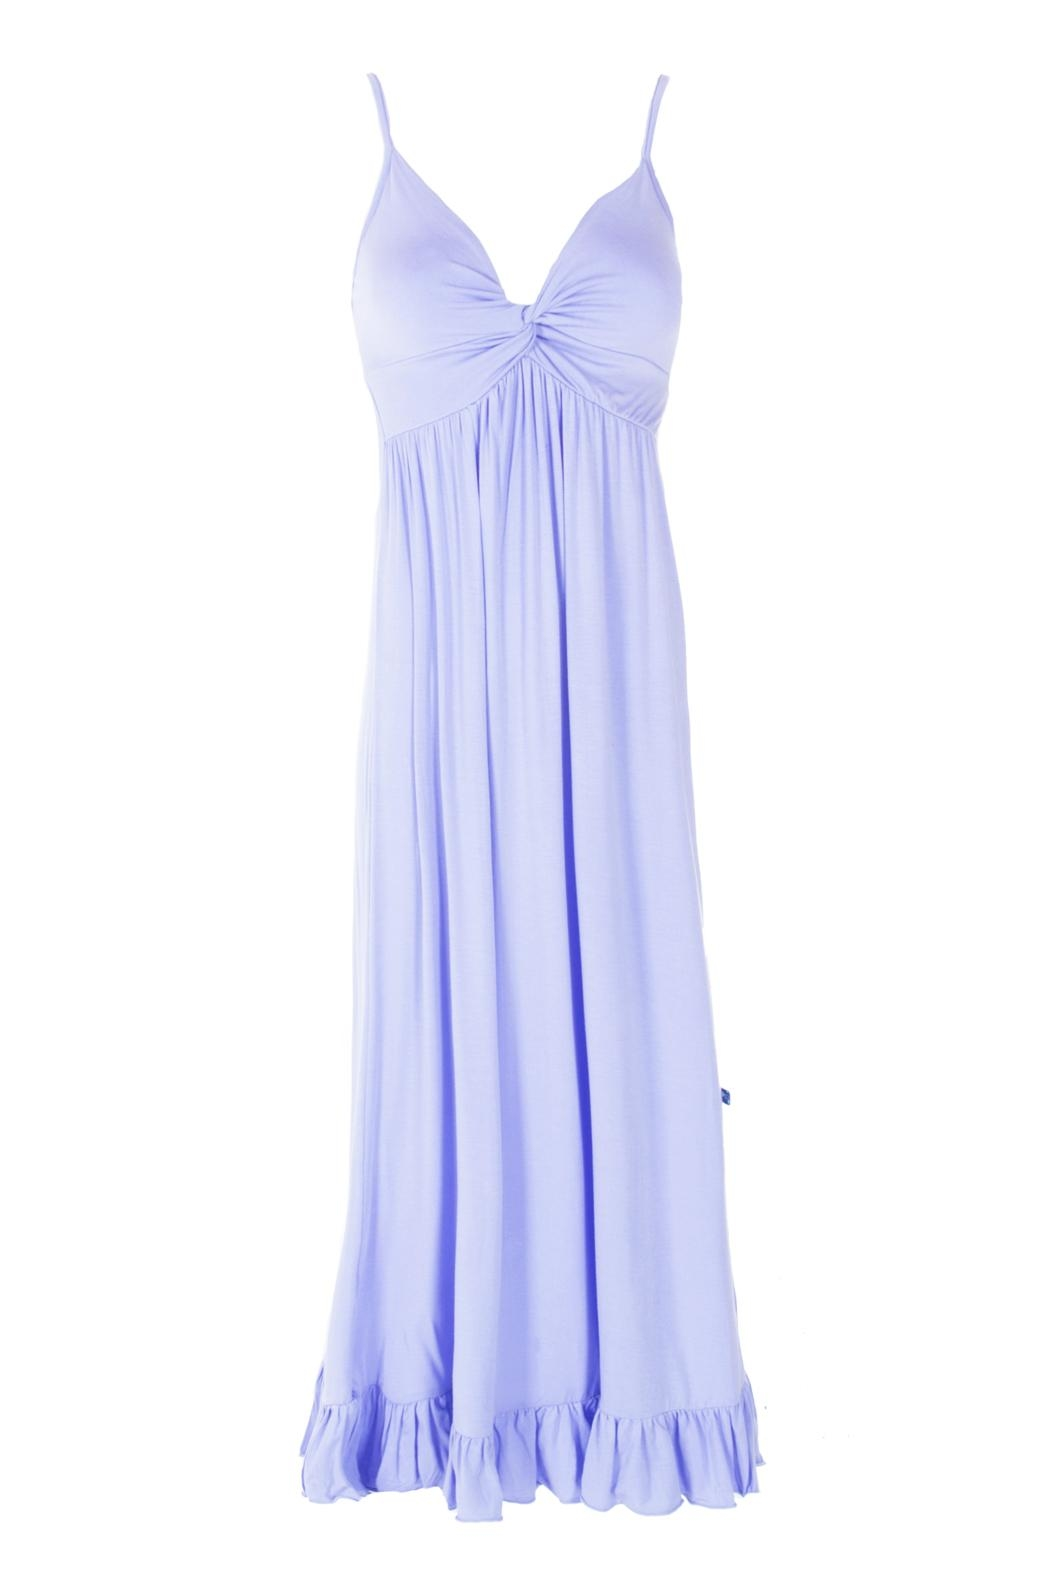 Kickee Pants Lilac Bamboo Nightgown from Louisiana by KK\'s Giving ...